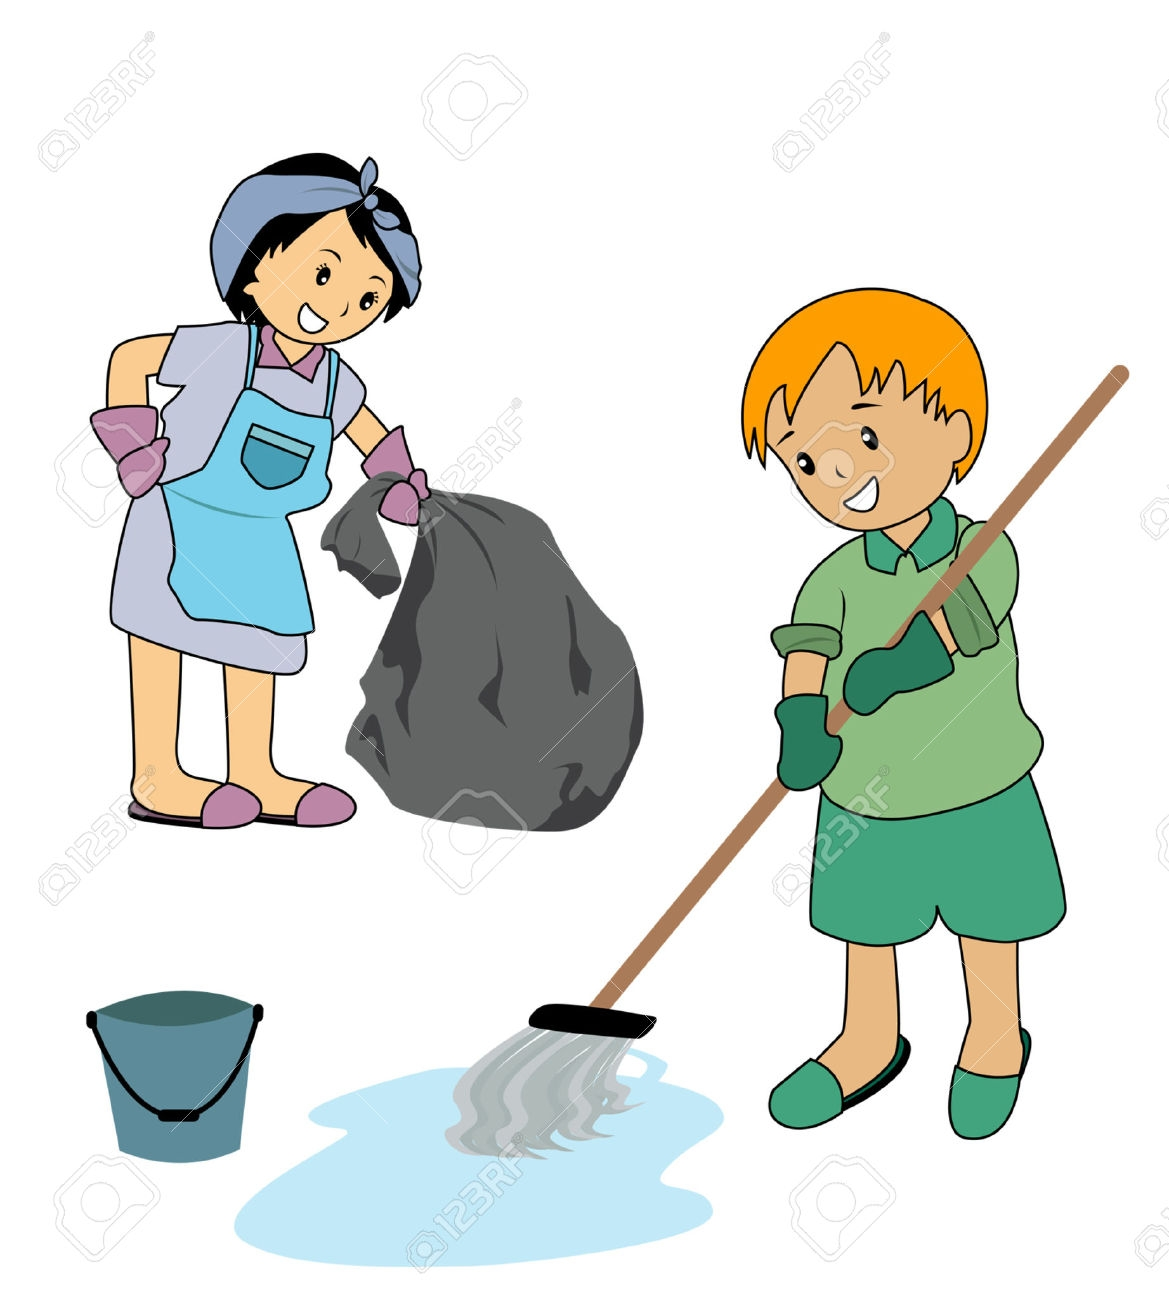 10ph clipart image free library House Cleaning Images | Free download best House Cleaning Images on ... image free library